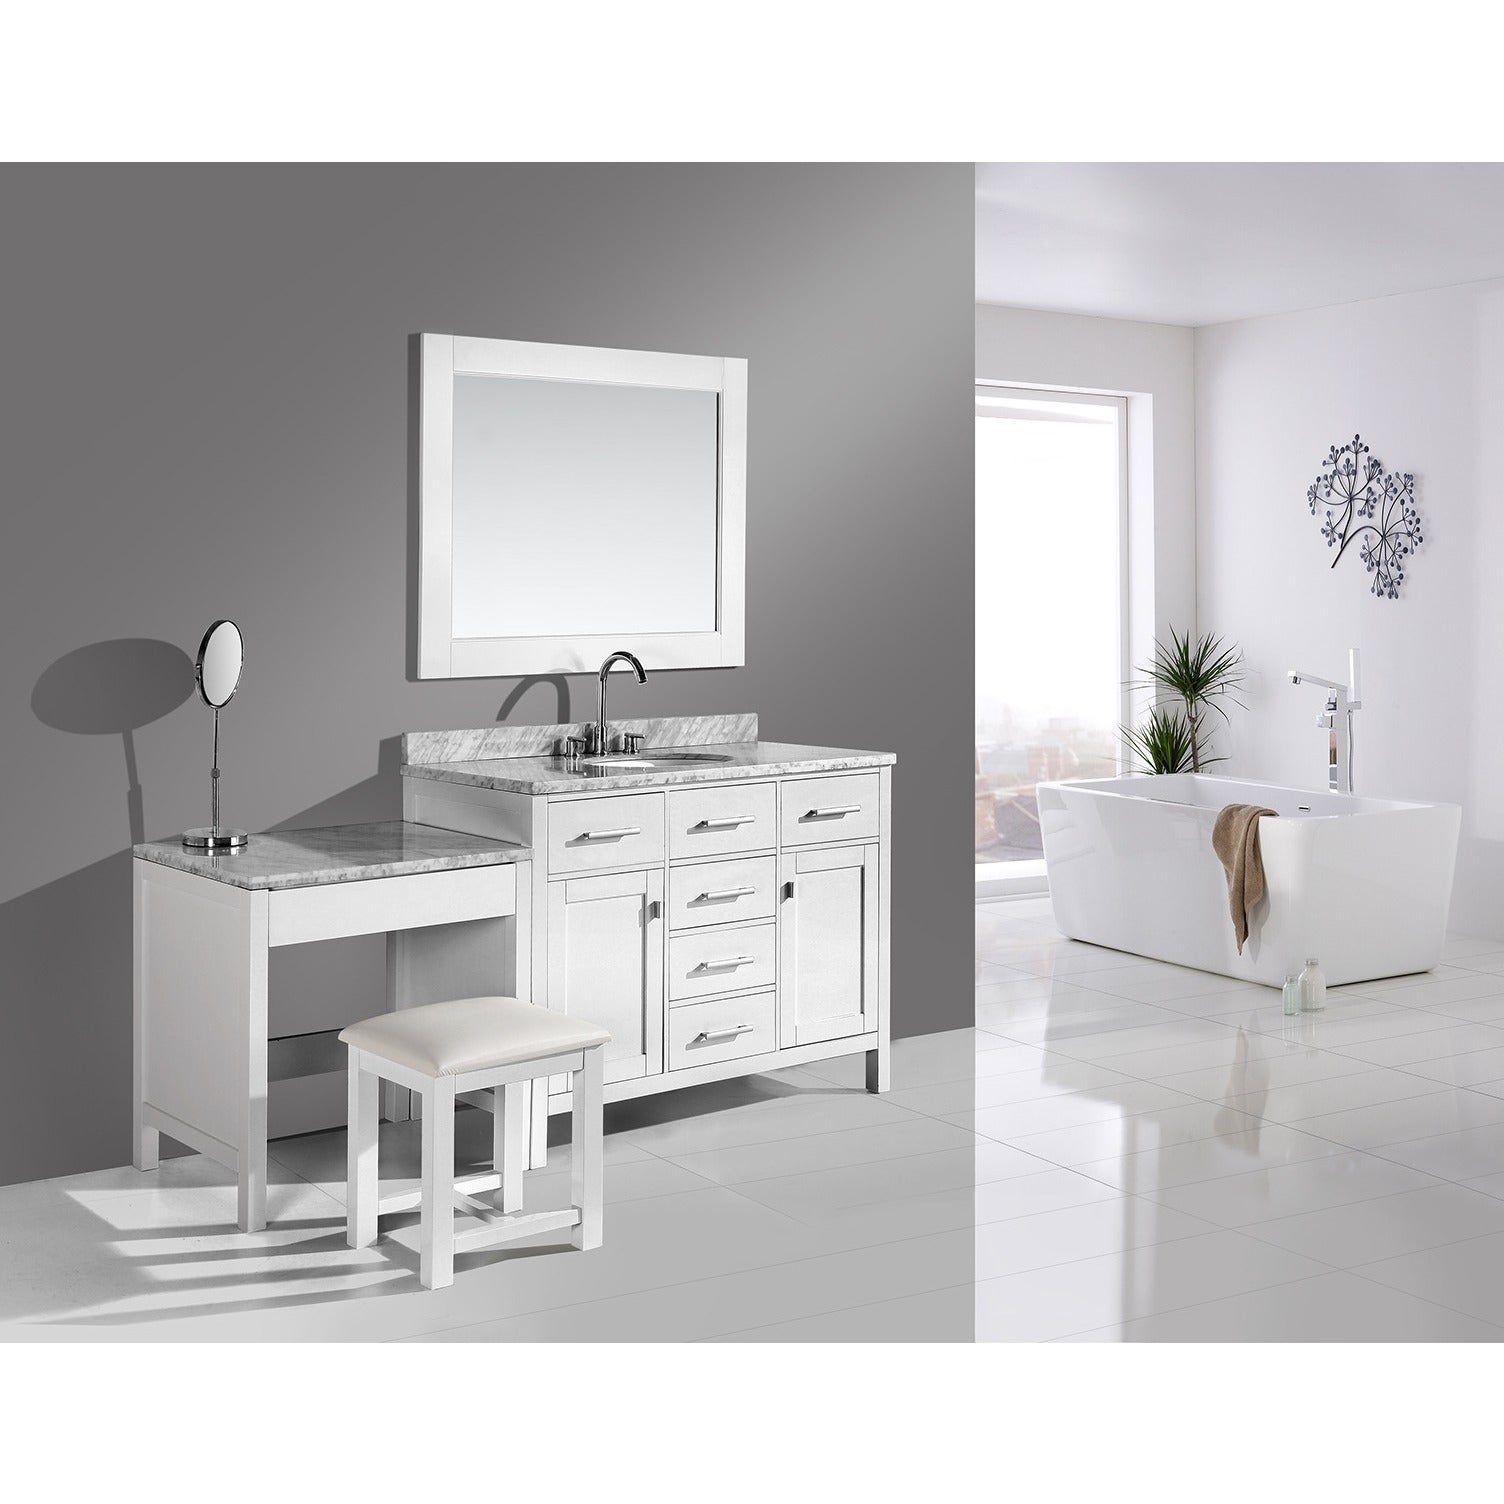 Shop Black Friday Deals On Design Element London 72 Inch Single Sink White Vanity Set With Makeup Table And Bench Seat Overstock 10521852